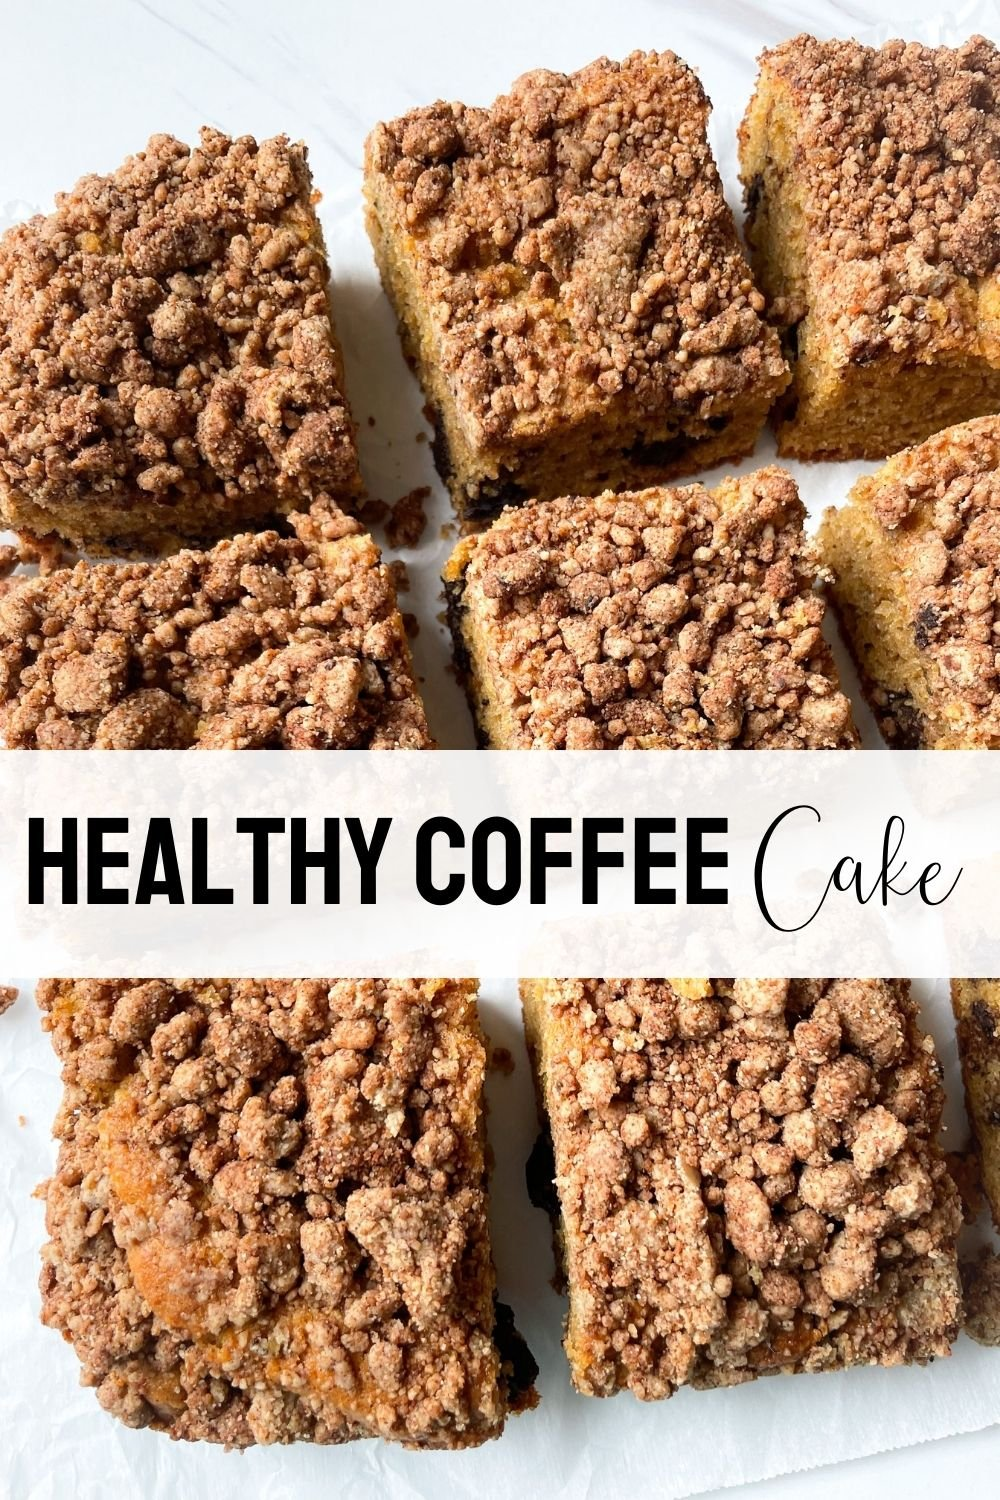 sliced coffee cake with text overlay